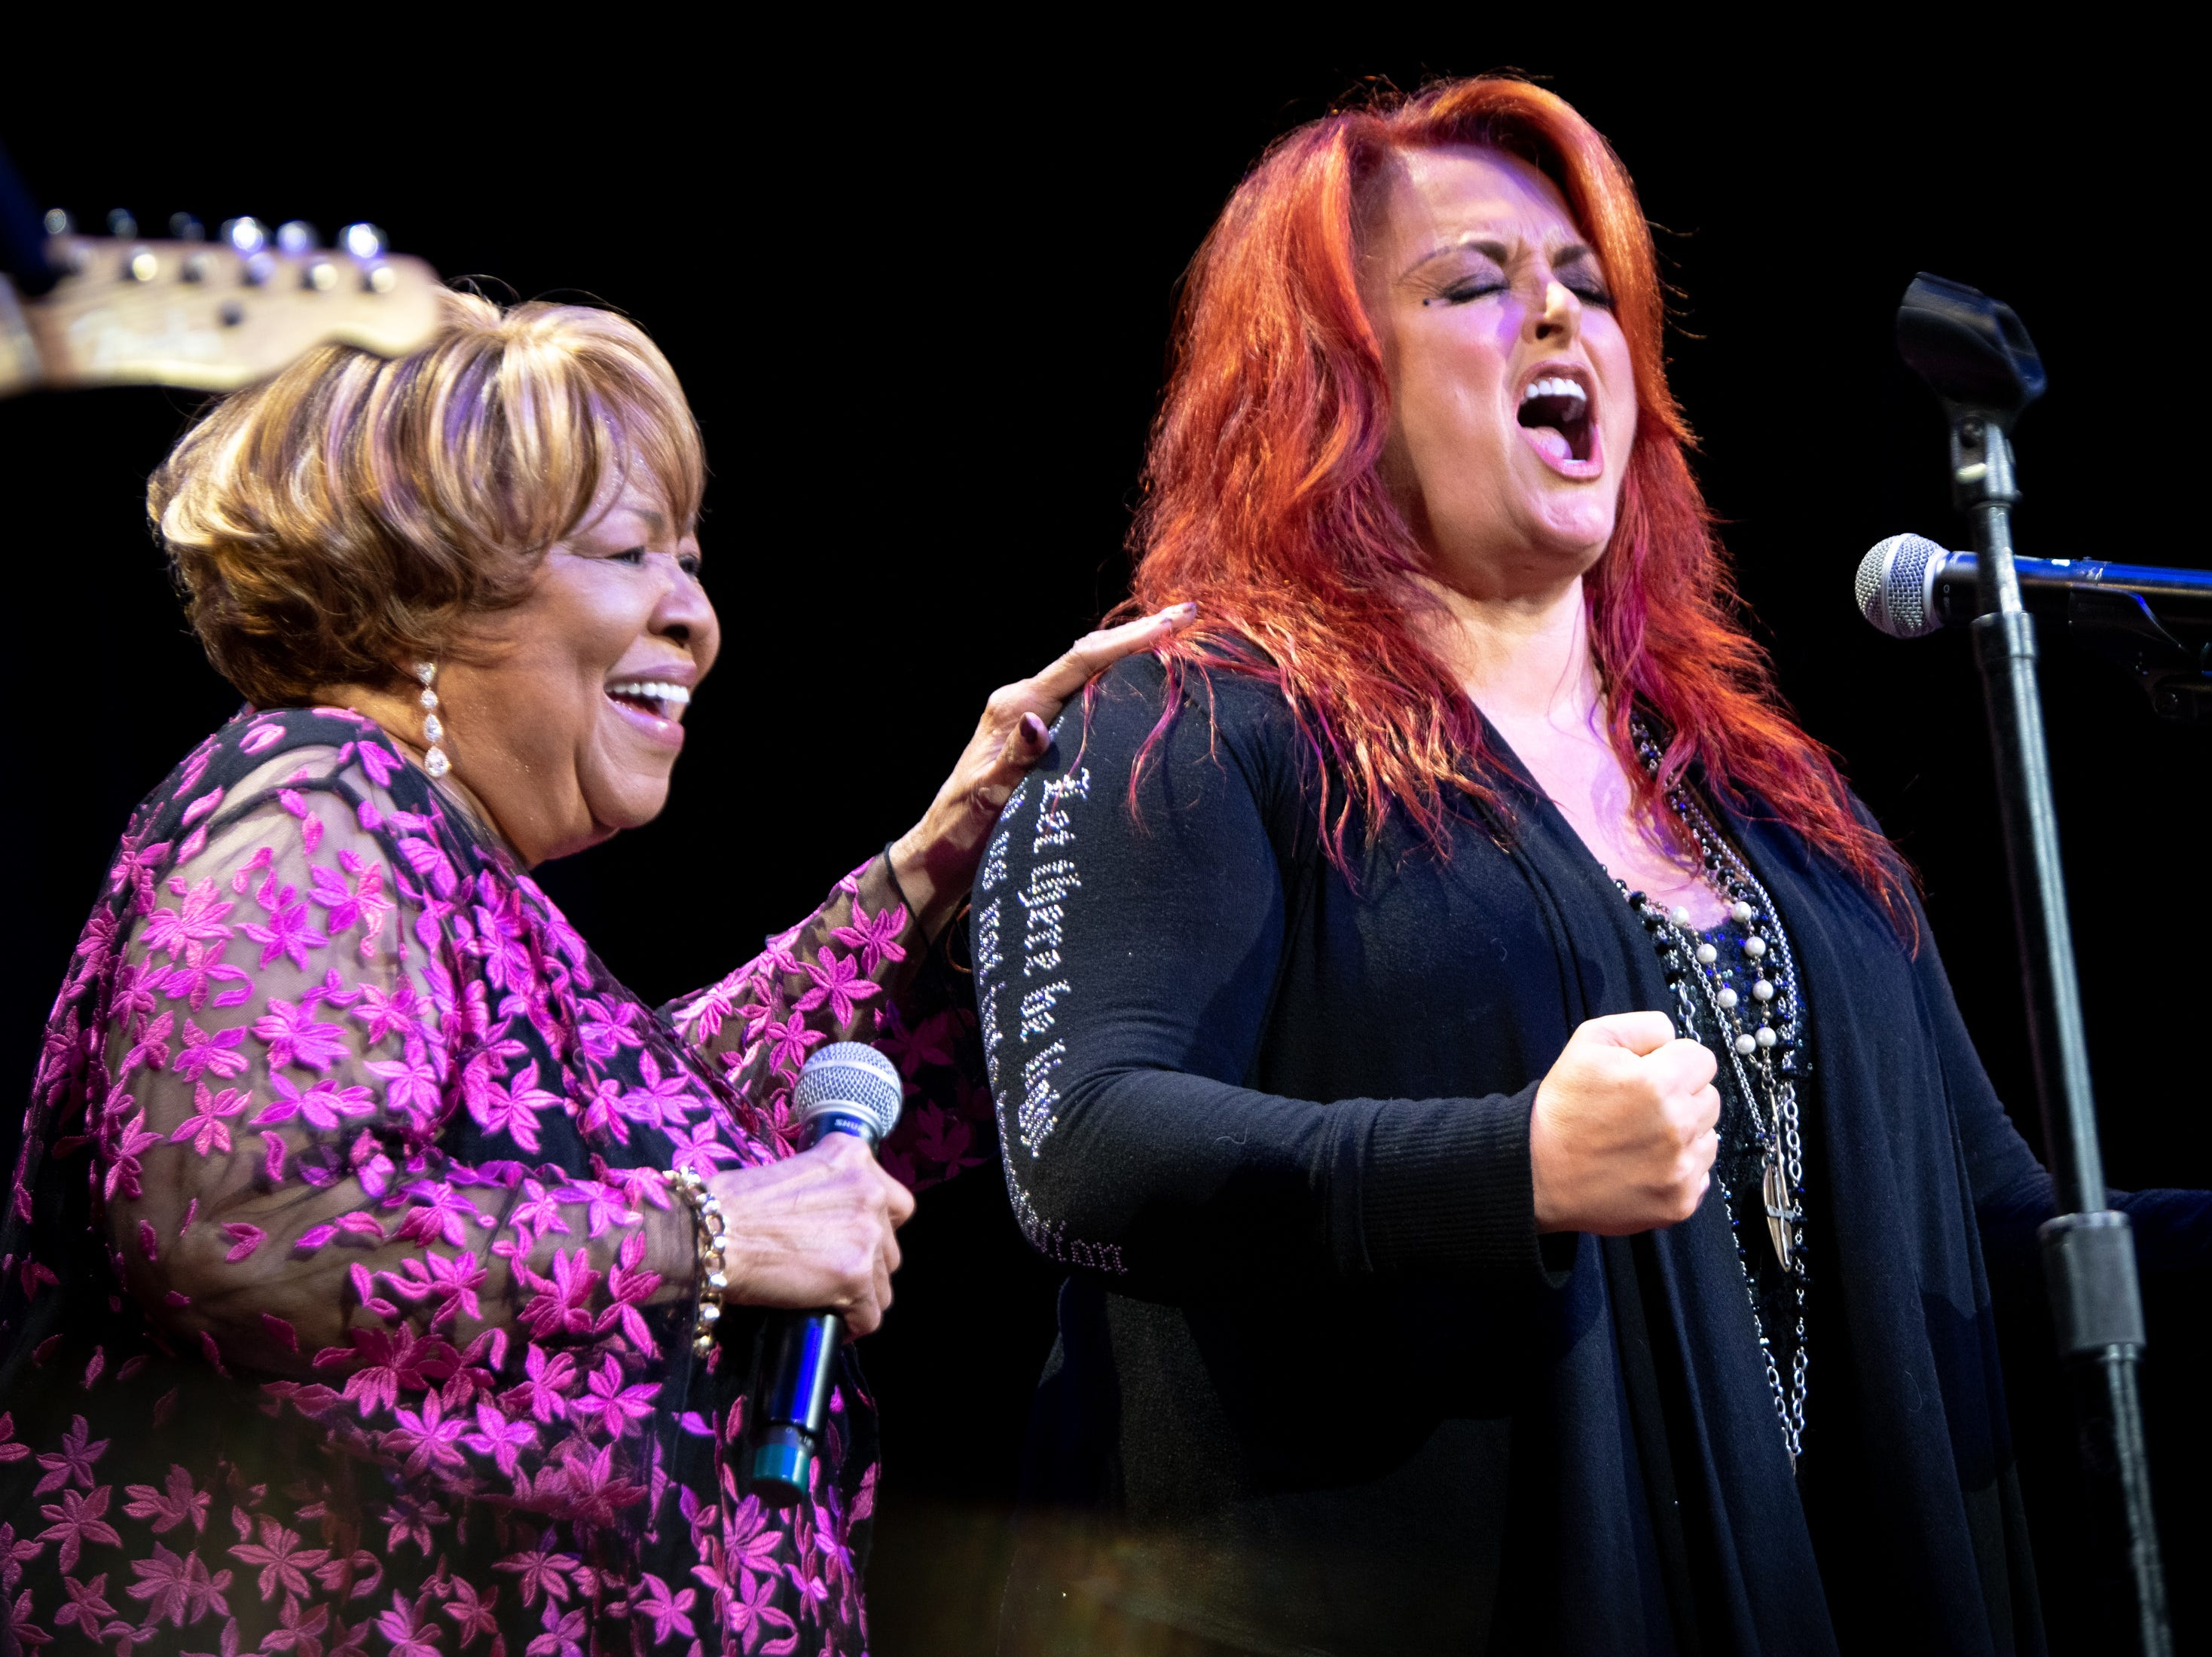 Mavis Staples performs with Wynonna Judd during the Mavis and Friends concert at the Ryman Auditorium in Nashville, Tenn., Wednesday, May 15, 2019.